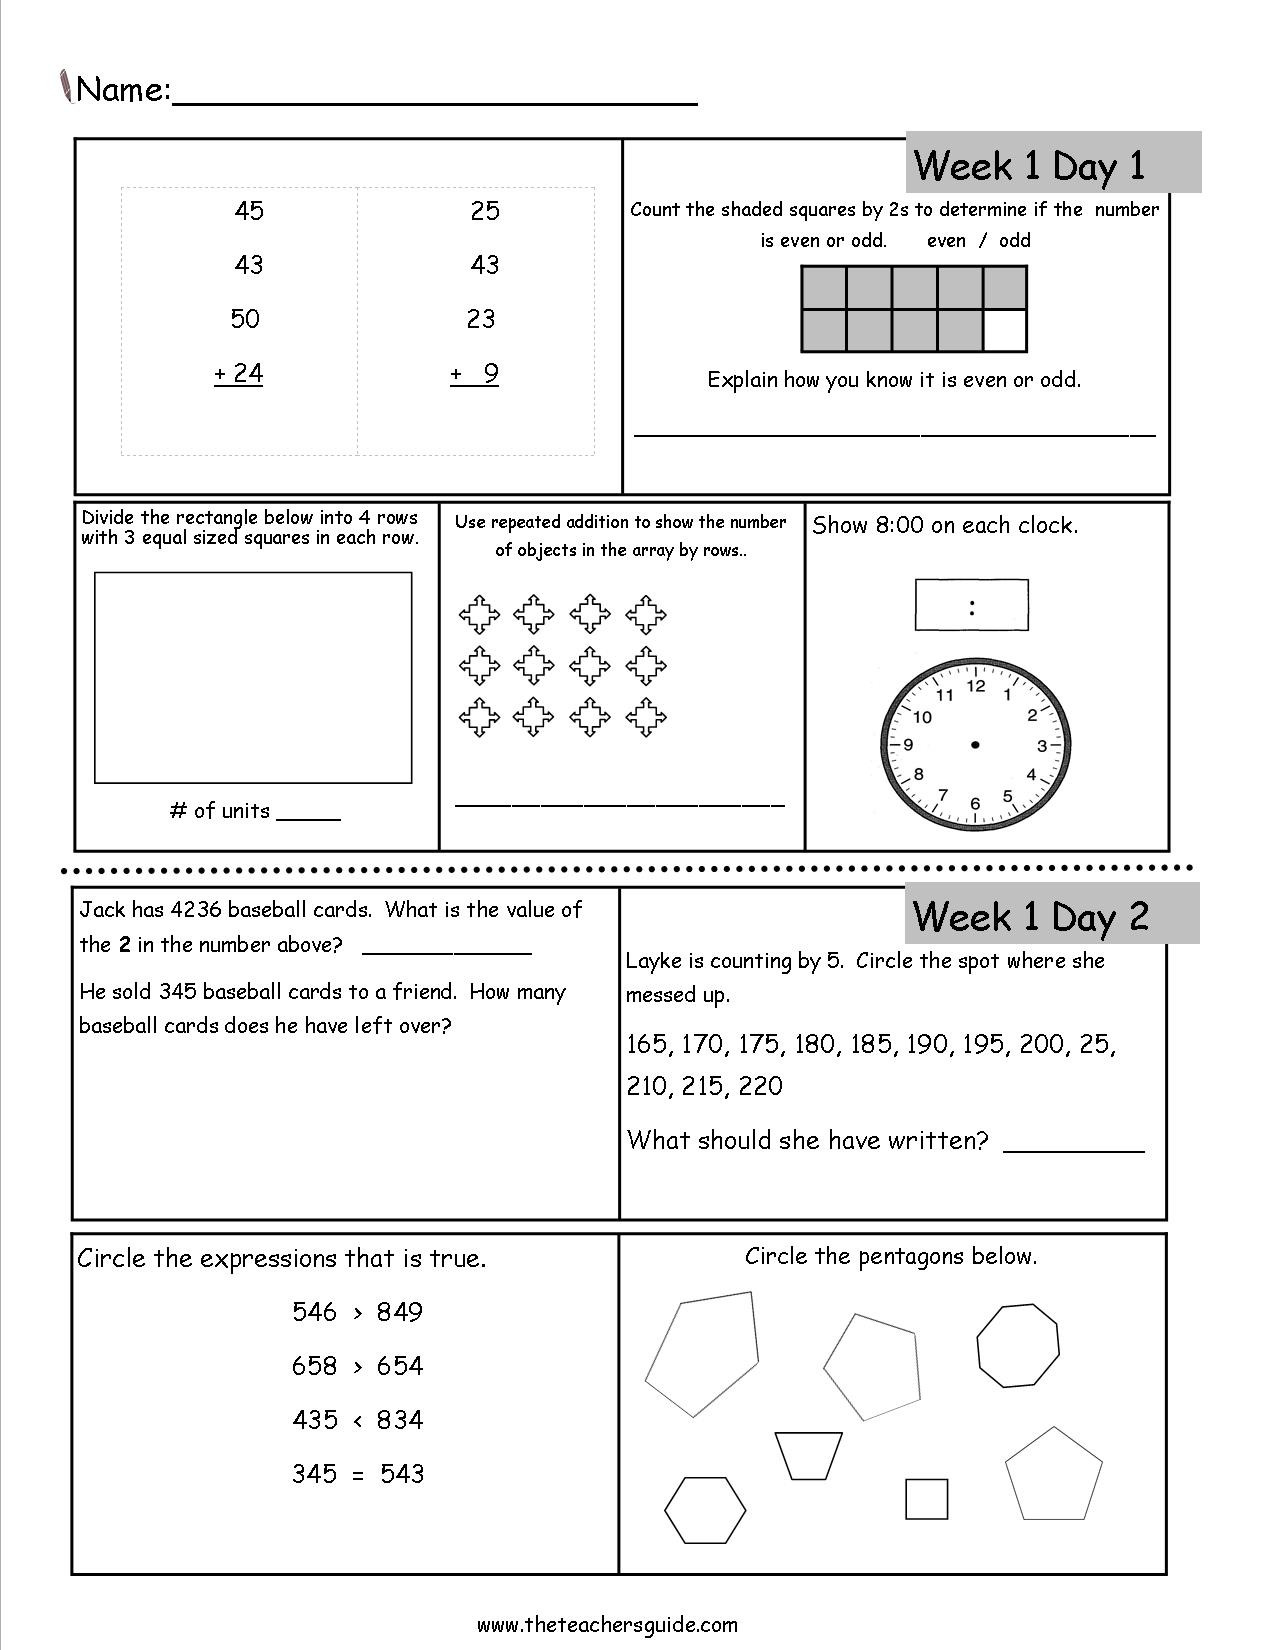 2nd Grade Teks Math Worksheets Free 3rd Grade Daily Math Worksheets